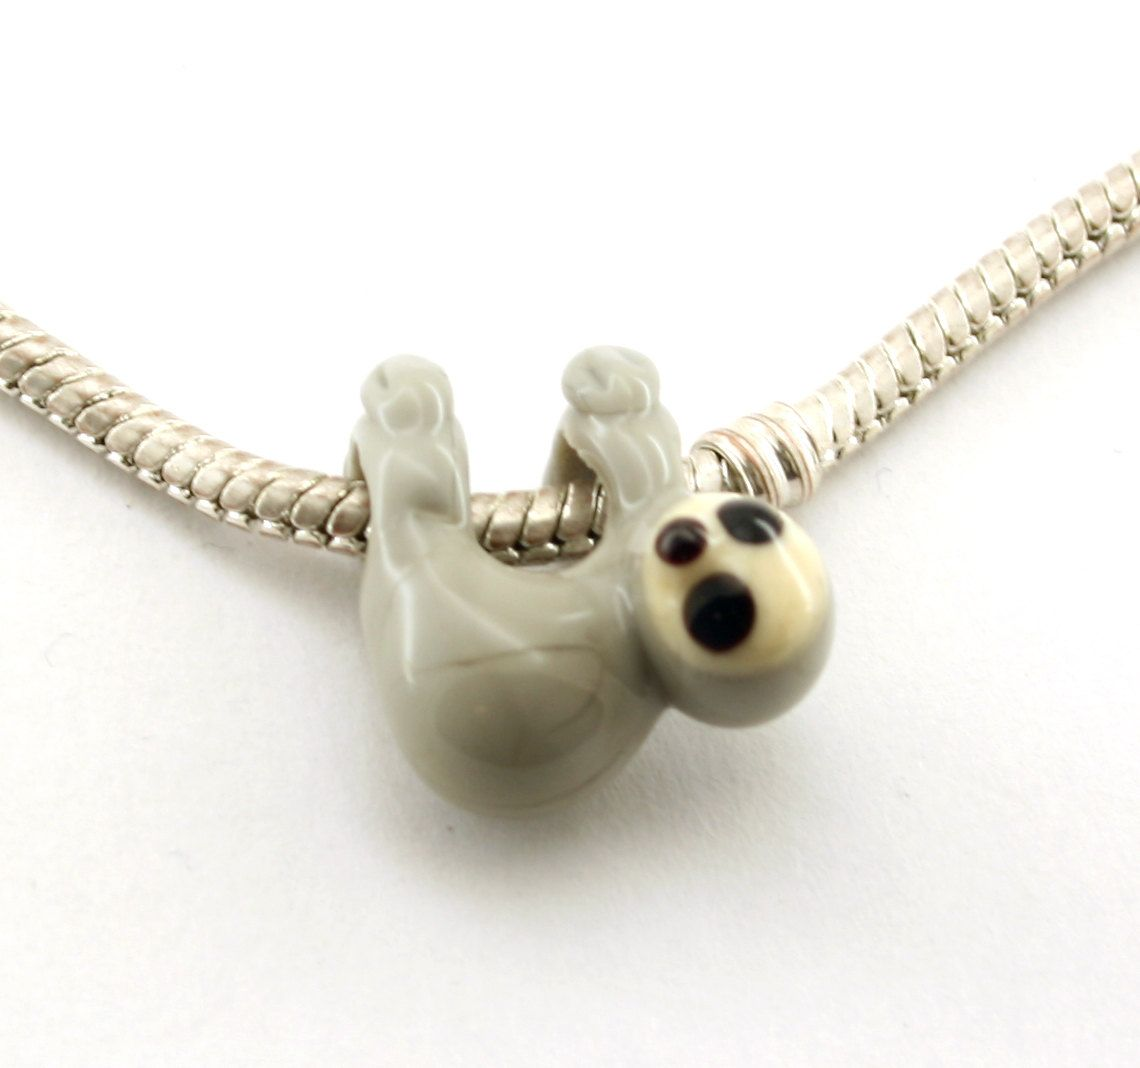 charms charm jewelry il big sloth necklace or bhb pendant european bracelet bead hole p fullxfull lampwork glass